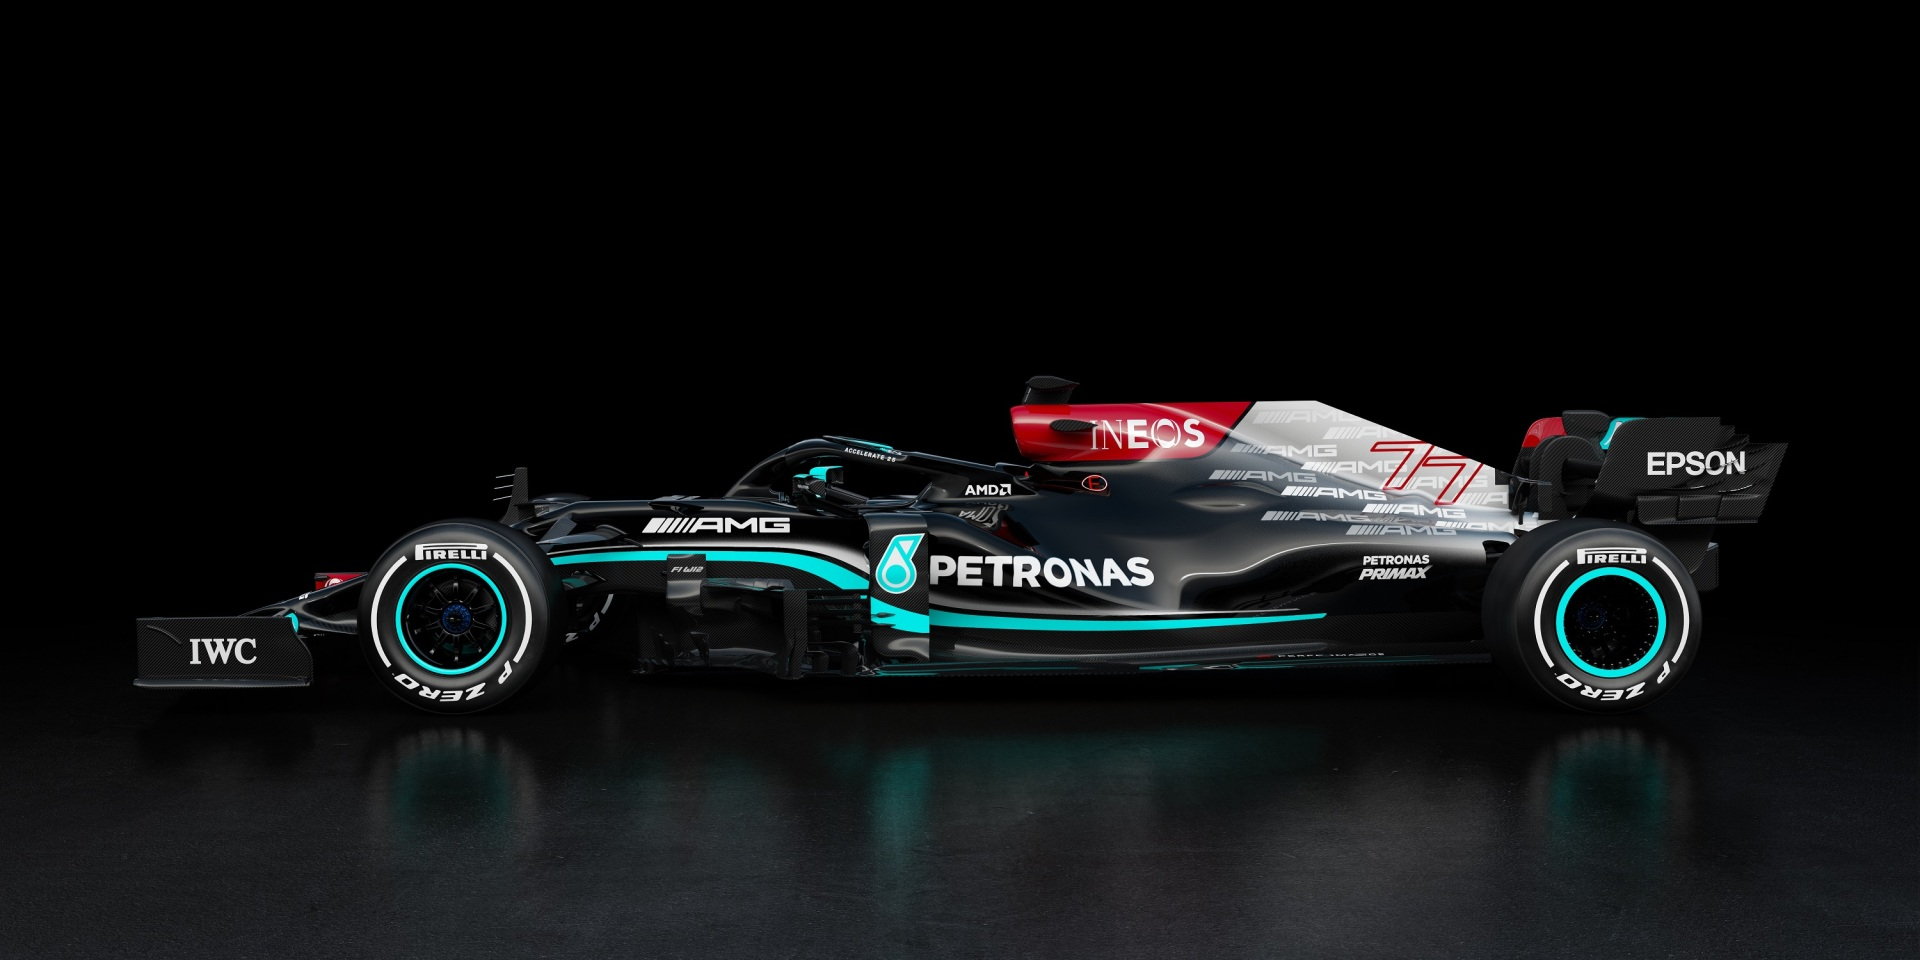 Mercedes reveals its 2021 livery W12 in defense of the 8th title.